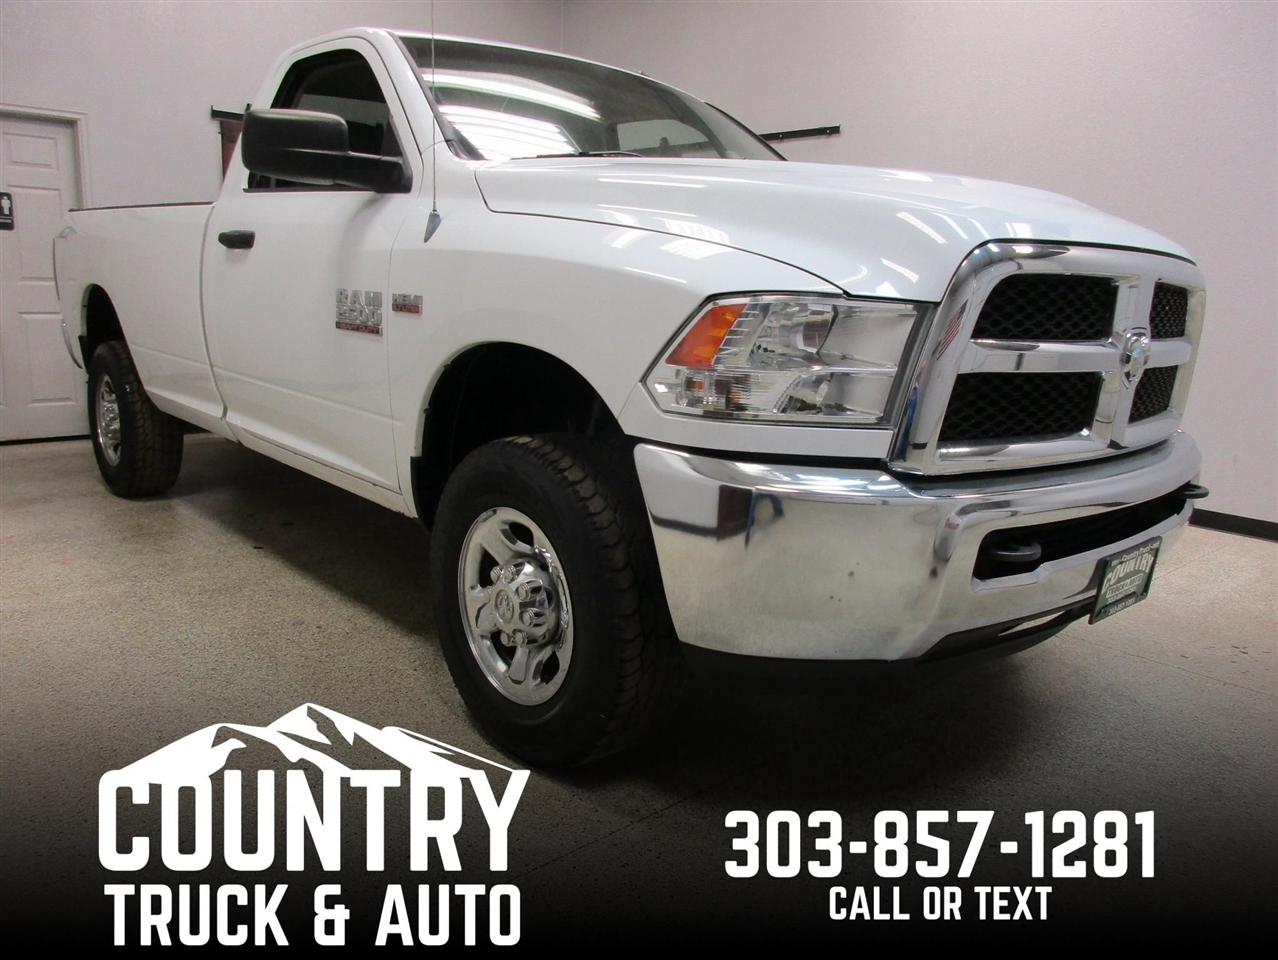 2013 RAM 2500 Tradesman Regular Cab Long Bed 4WD